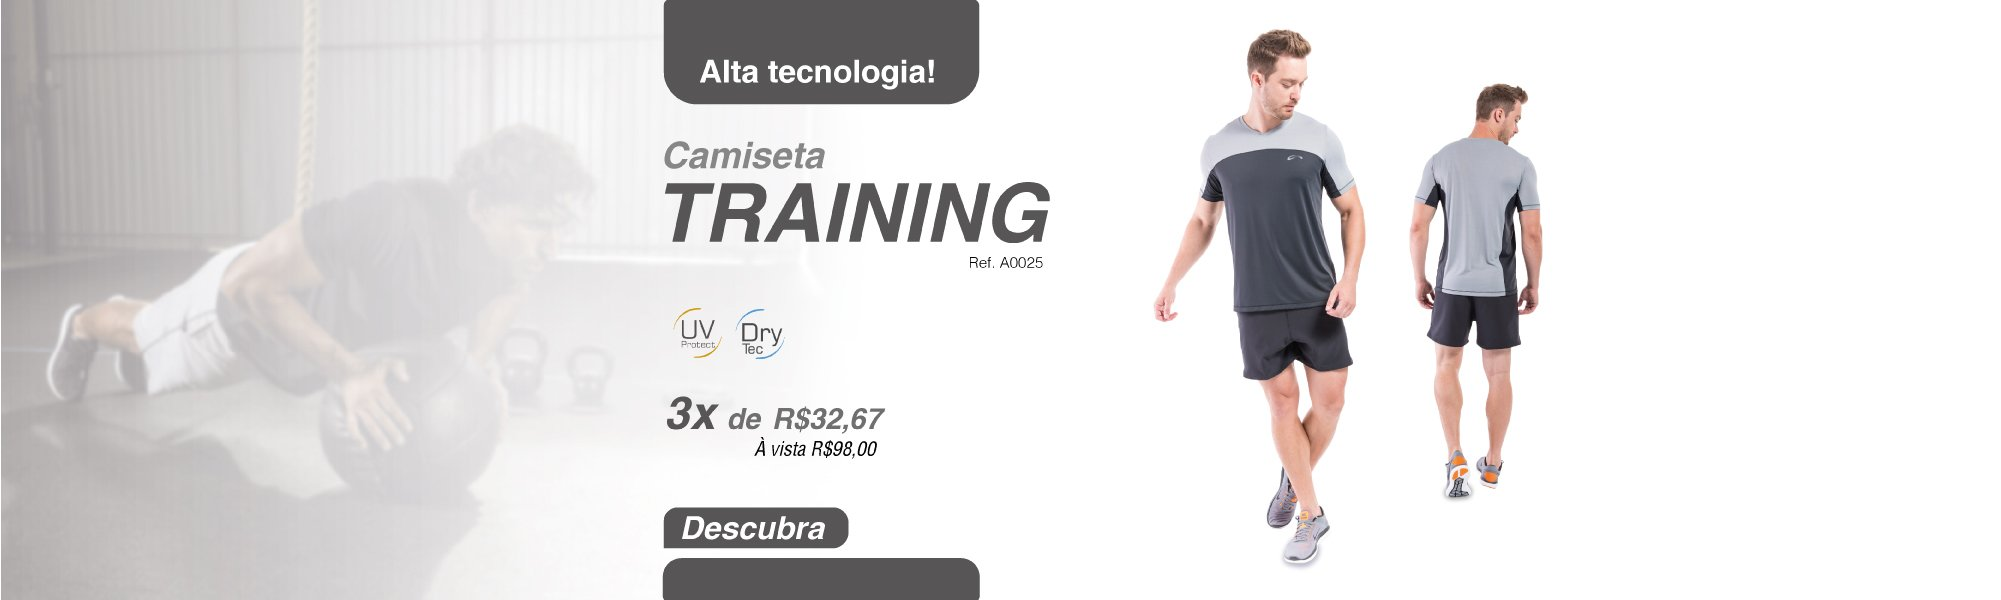 Camiseta - Training